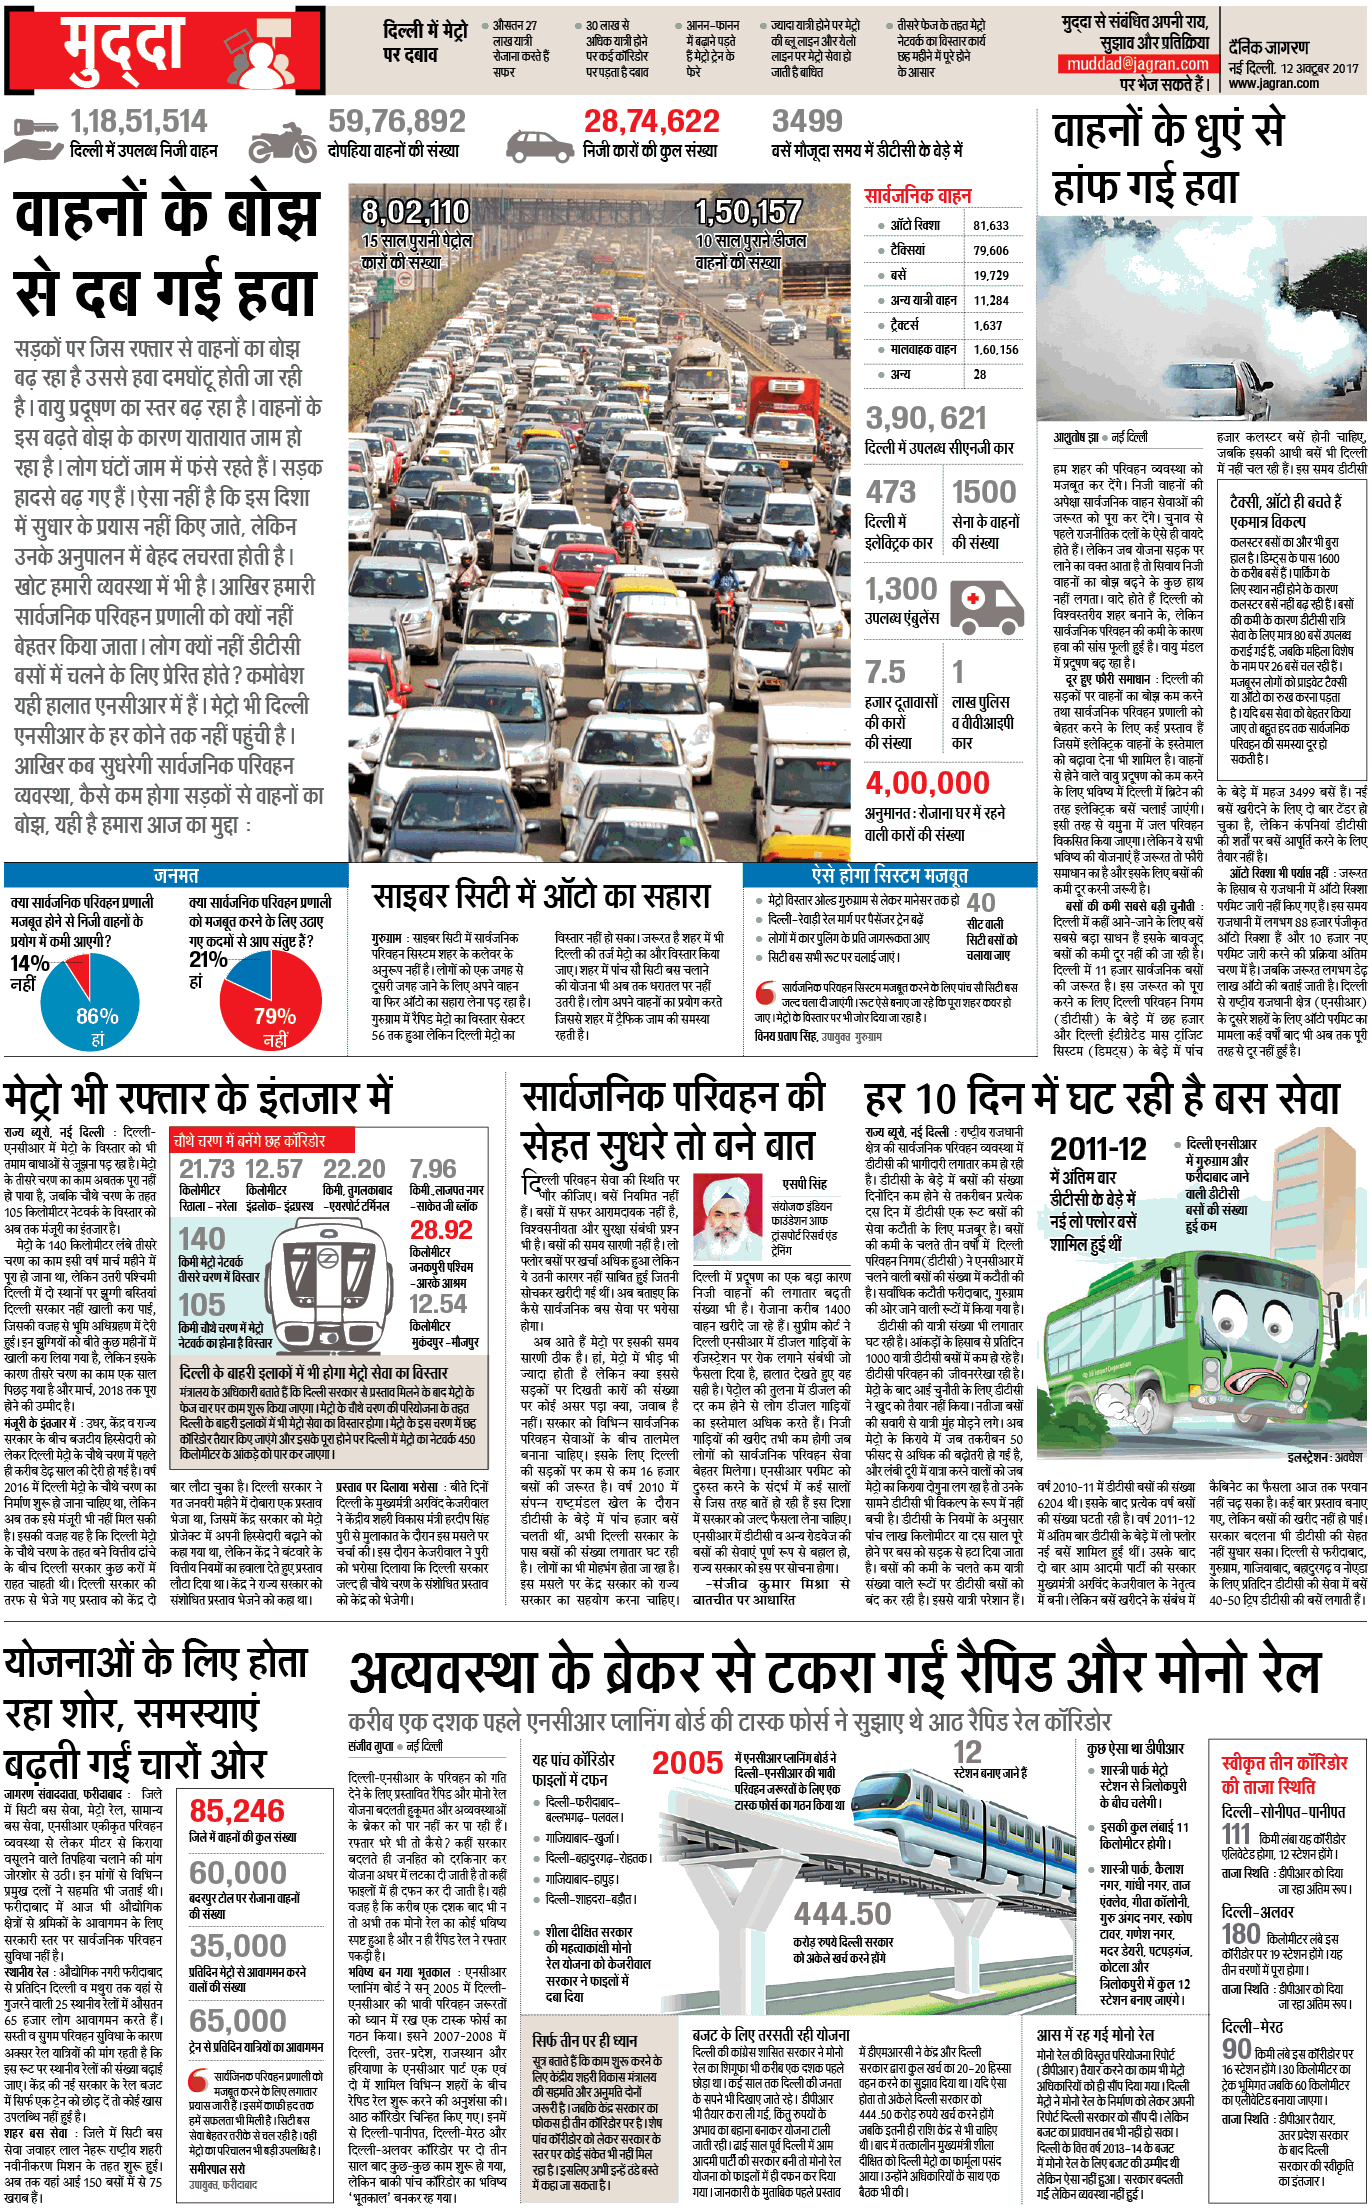 Vehicular Pollution in Capital City